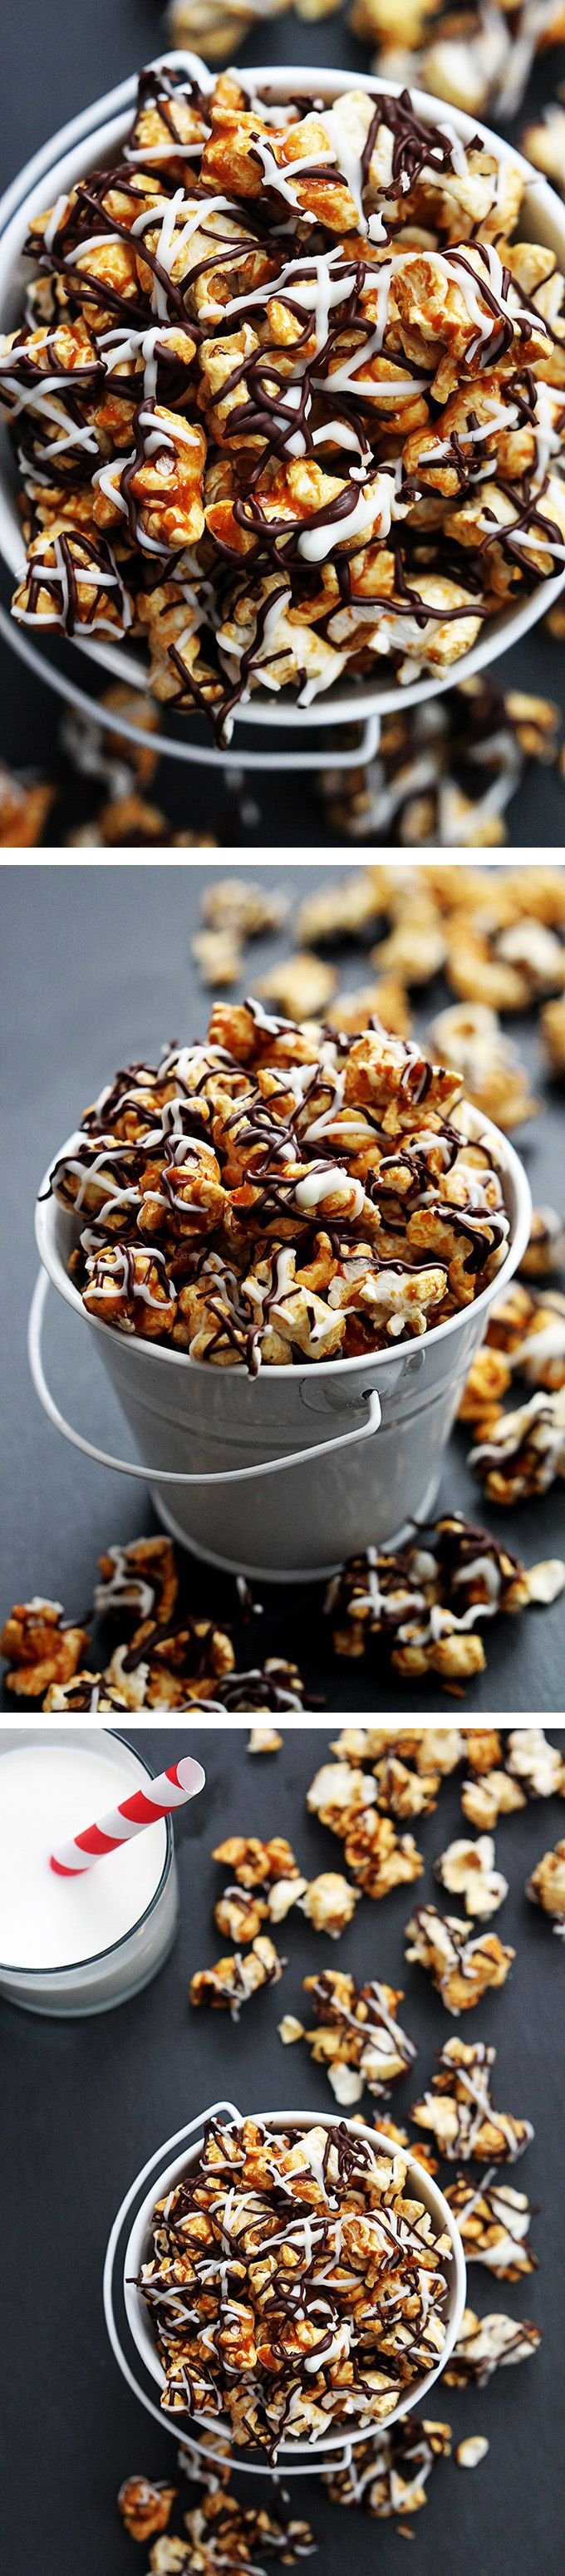 Zebra Caramel Corn - Be warned, this stuff is addicting! Perfectly sweet and salty crunchy caramel corn drizzled in two kinds of chocolate.